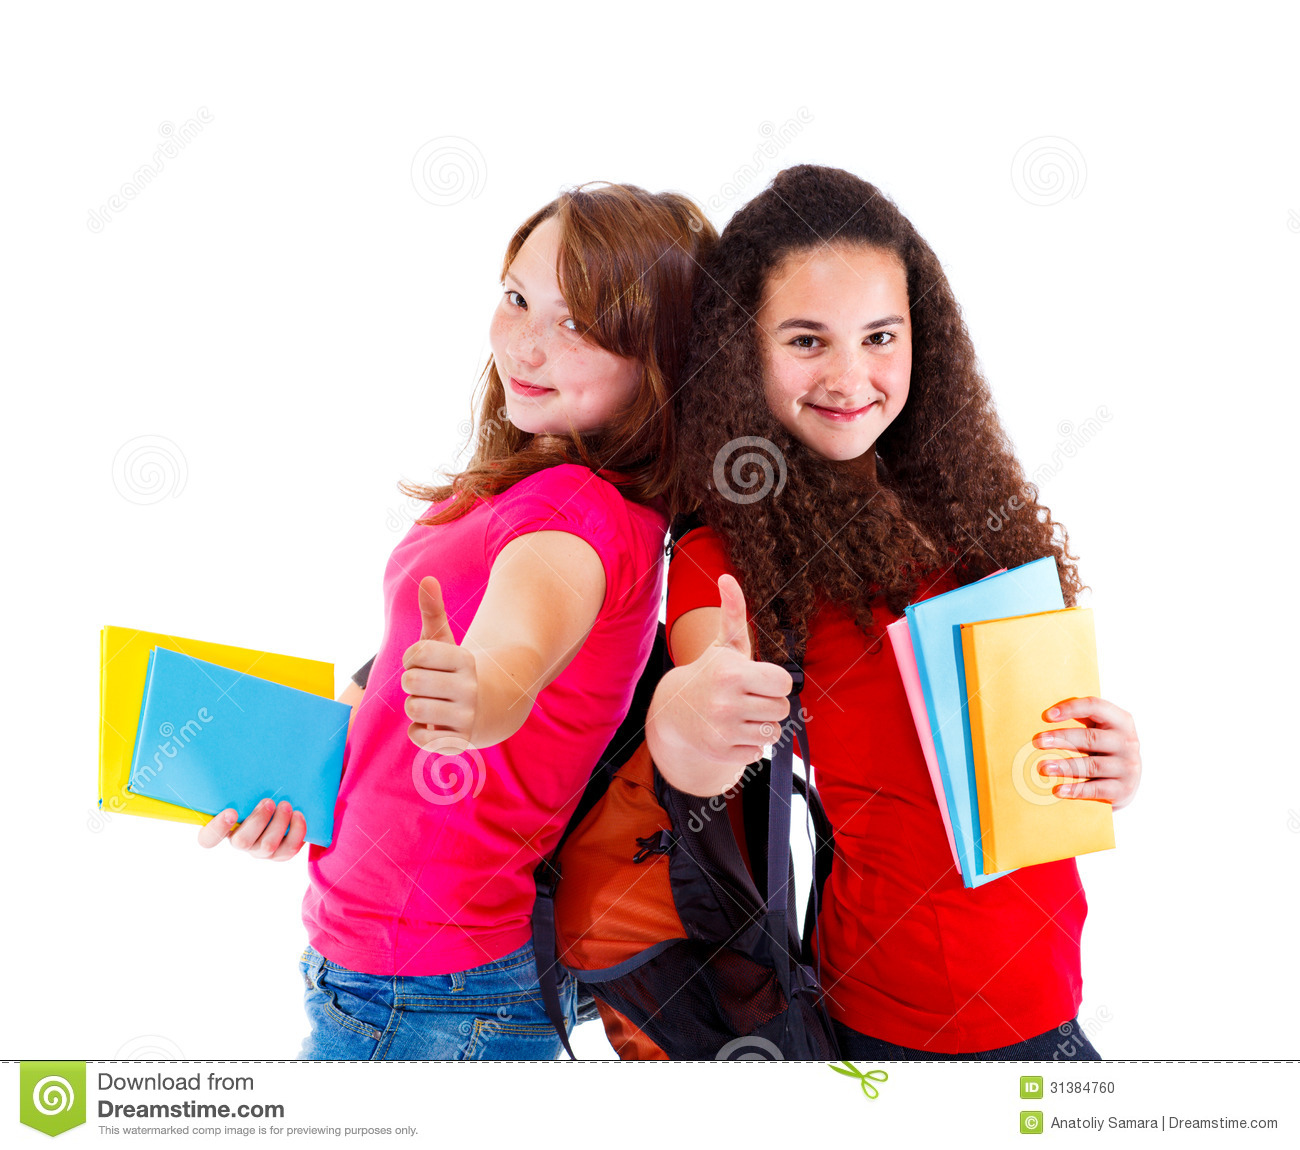 successful teens Ten life skills for teens - ages 15-18 - ages & stages even during the best of times, parents wonder whether their teens are developing all the skills they need to be successful in life.